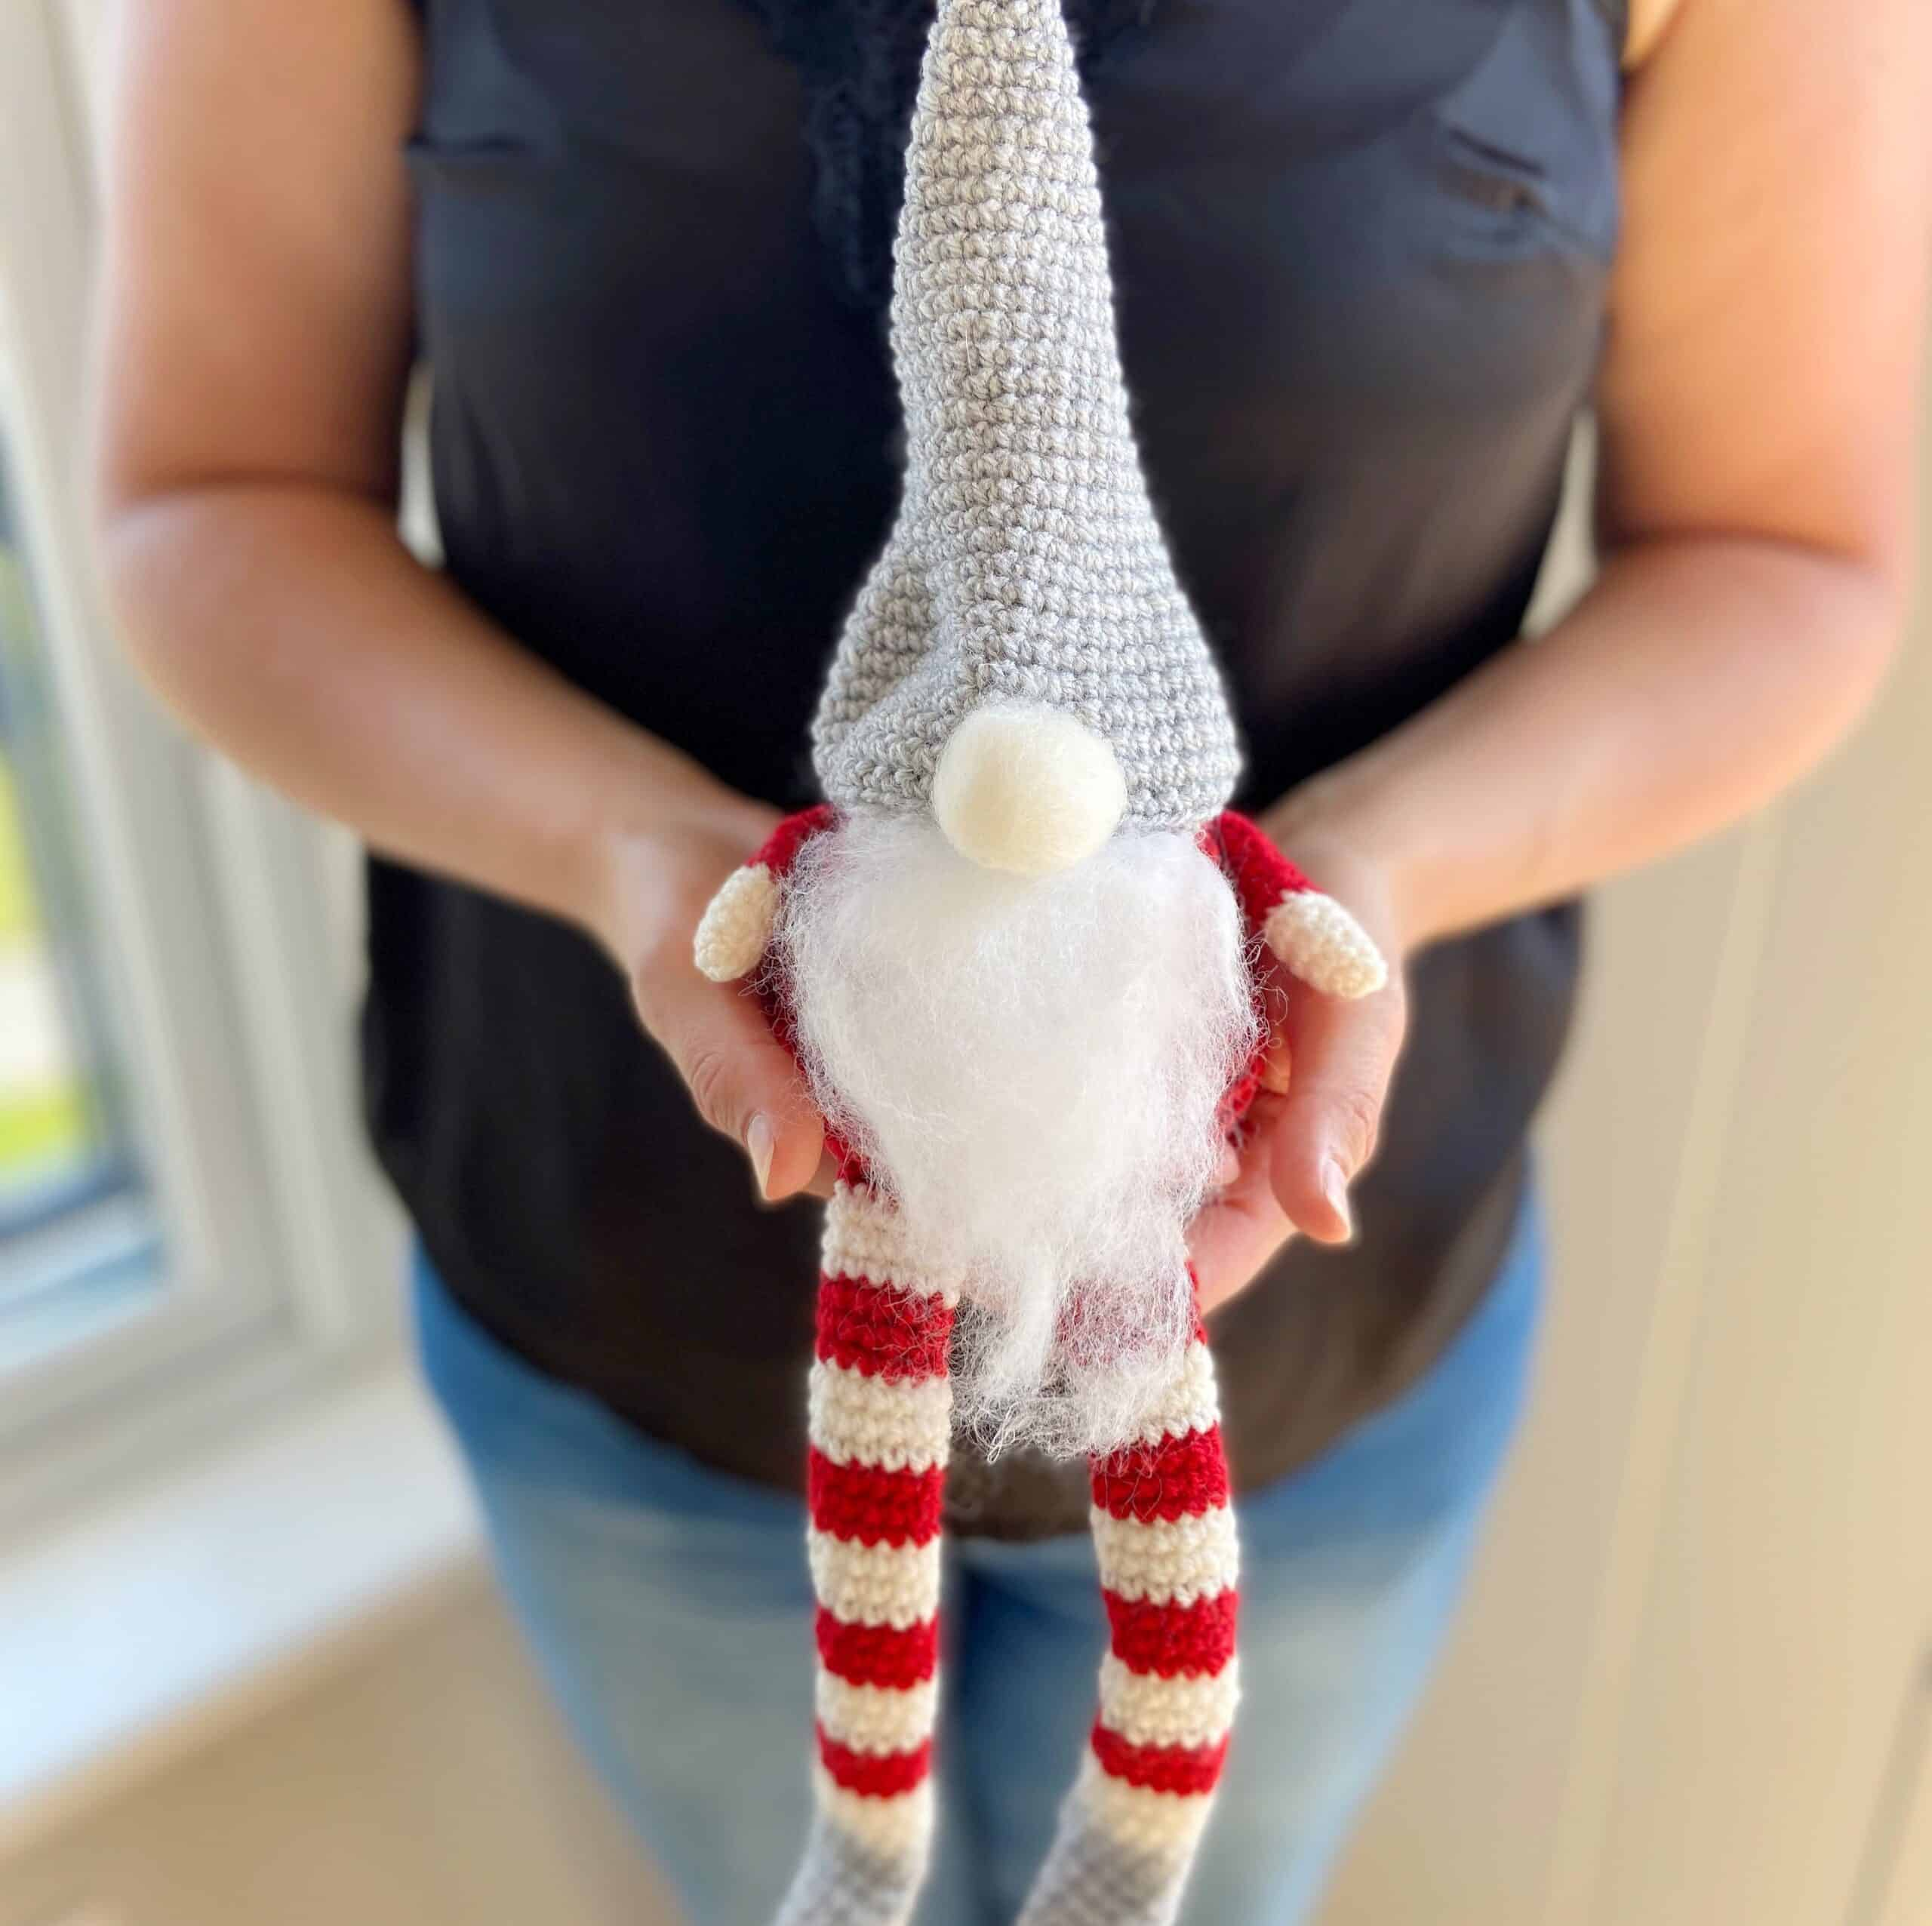 Christmas crochet gnome in red, white and grey being held by woman in hands